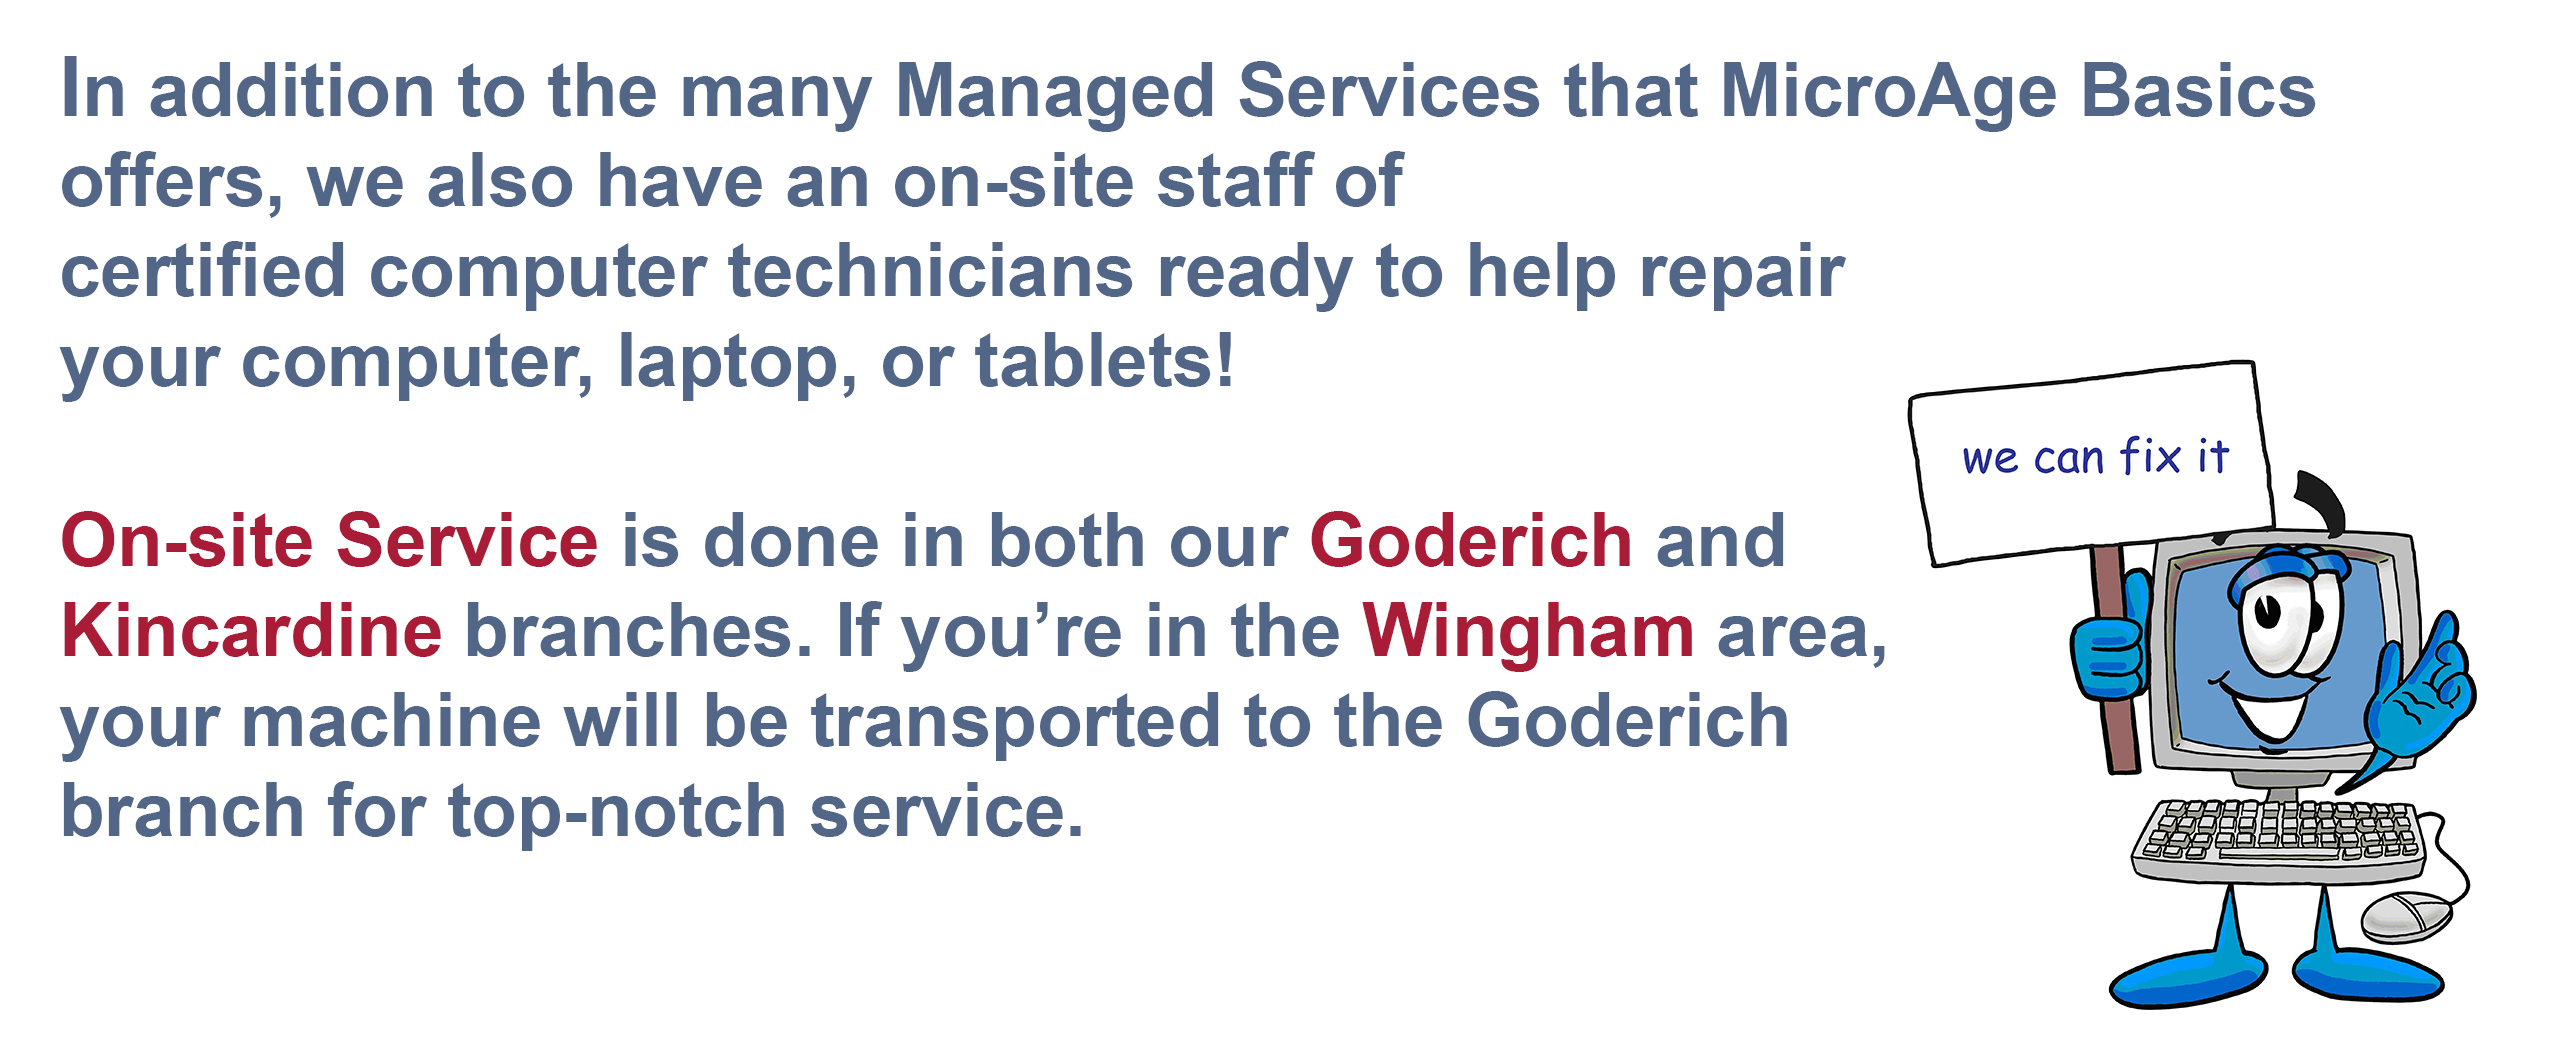 In addition to the many Managed Services that MicroAge Basics offers, we also have an on-site staff of certified technicians ready to help repair your computer, laptop, or tablets! On-site Service is done in both our Goderich and Kincardine branches.  If you're in the Wingham area your machine will be transported to the Goderich branch for top-notch service.